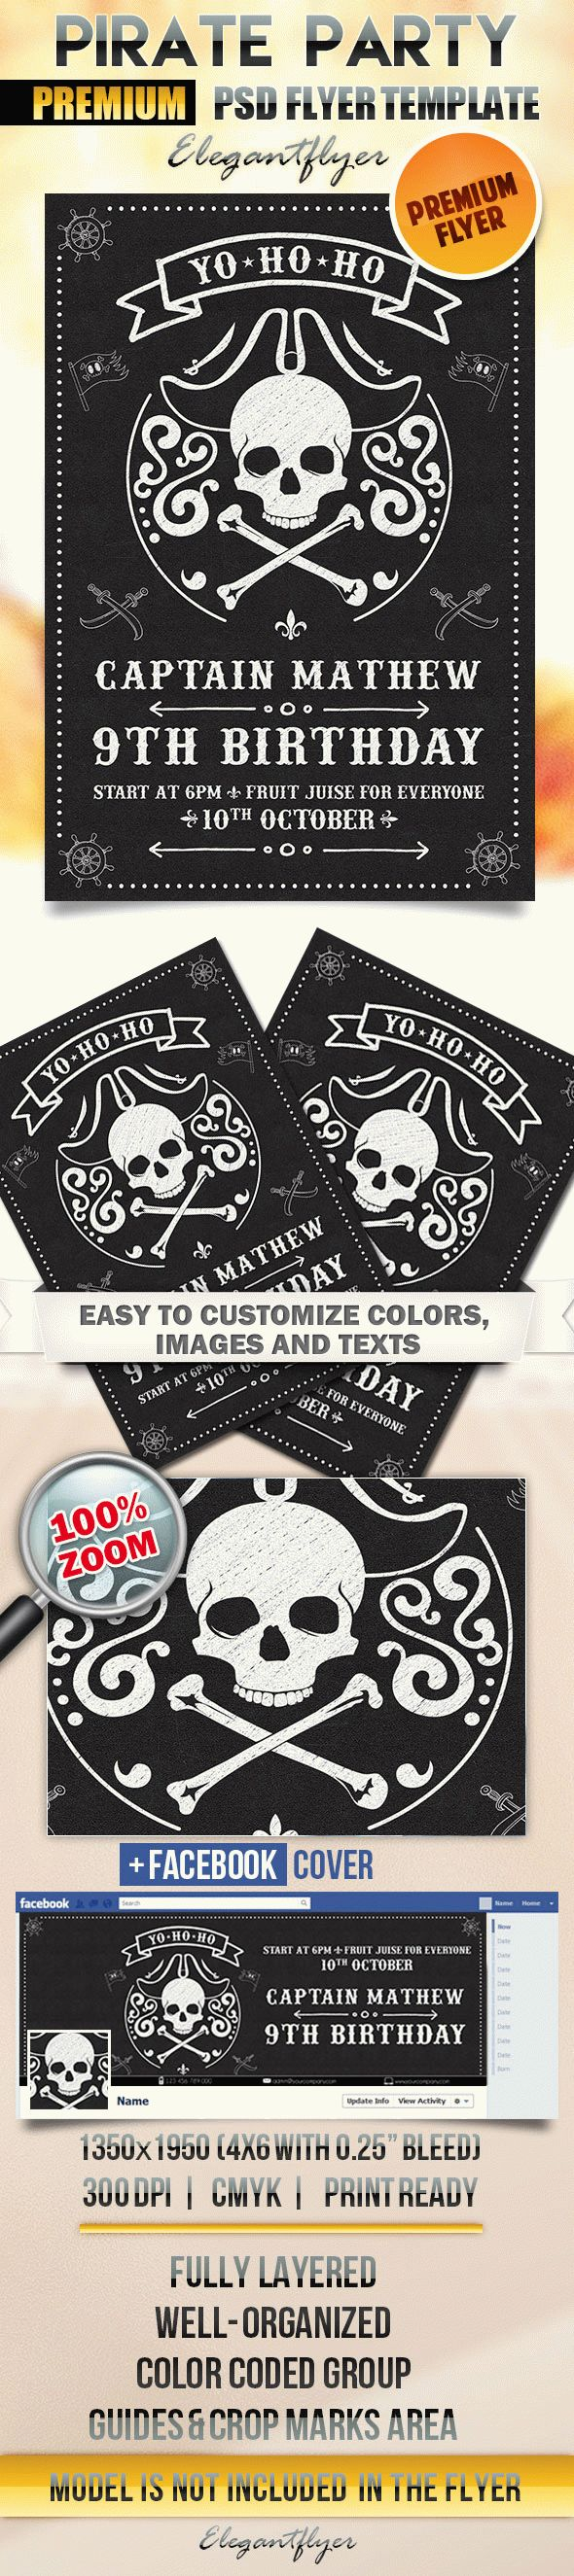 Flyer Template For Pirate Party